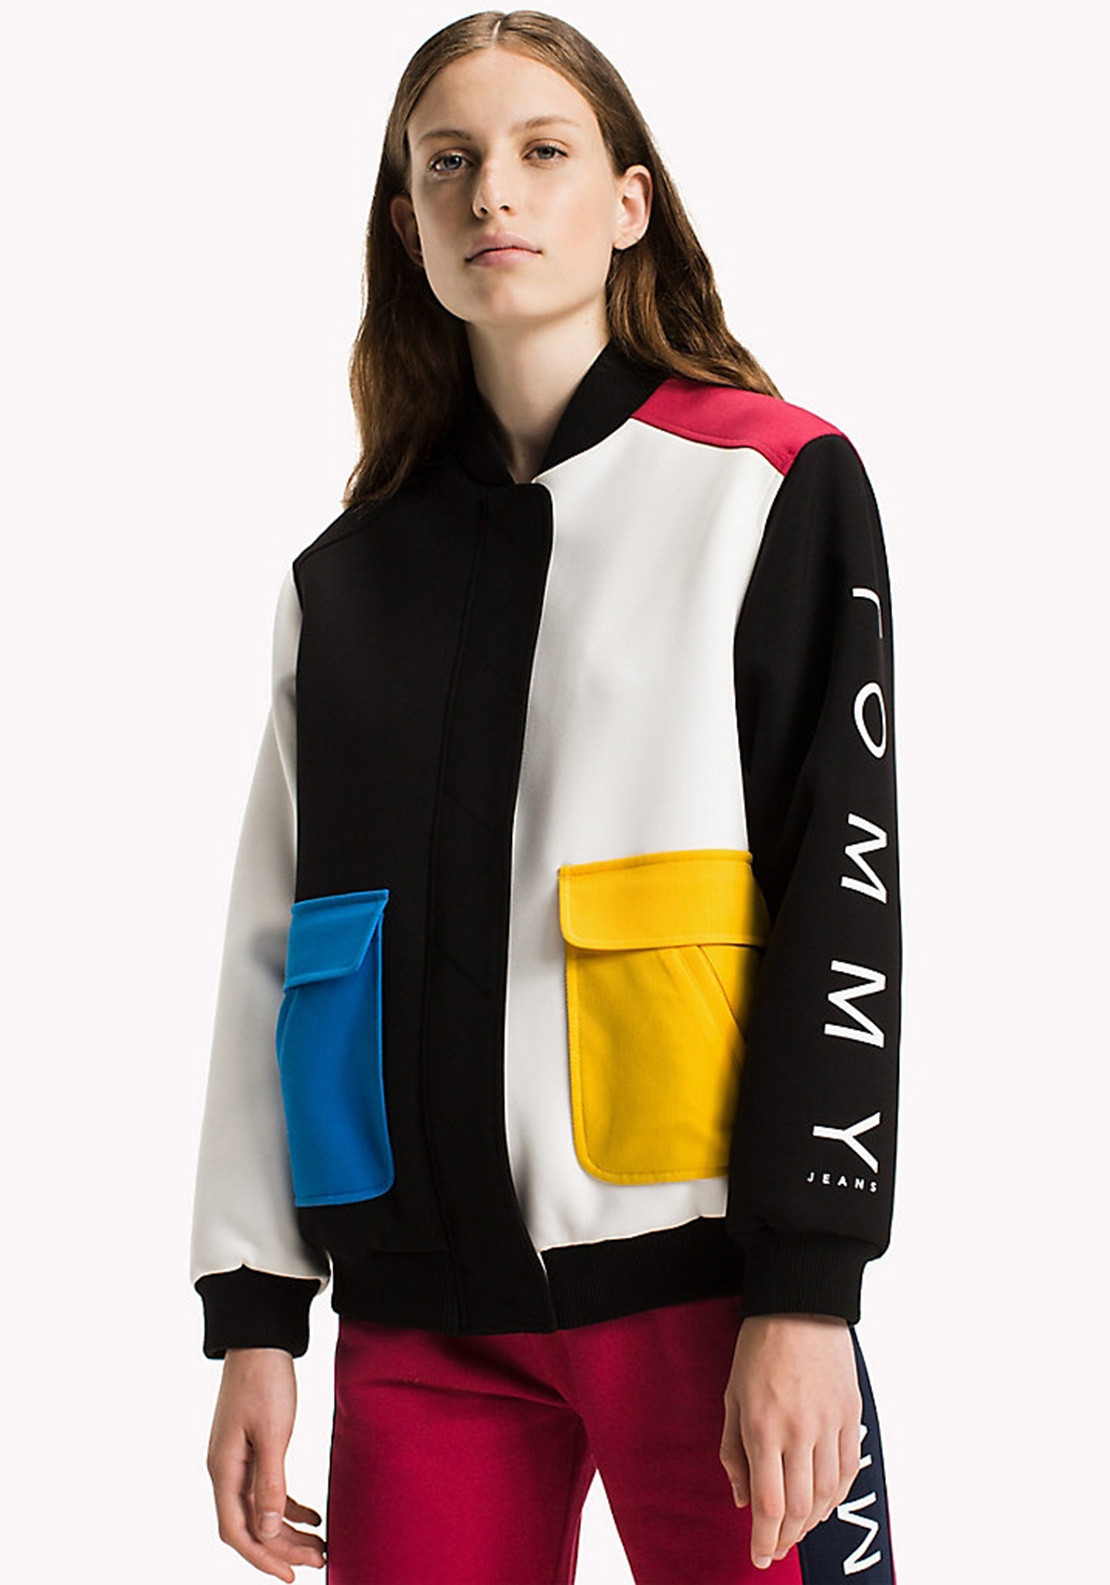 7a79c996c Tommy Jeans Womens Colour Block Bomber Jacket, Black | McElhinneys